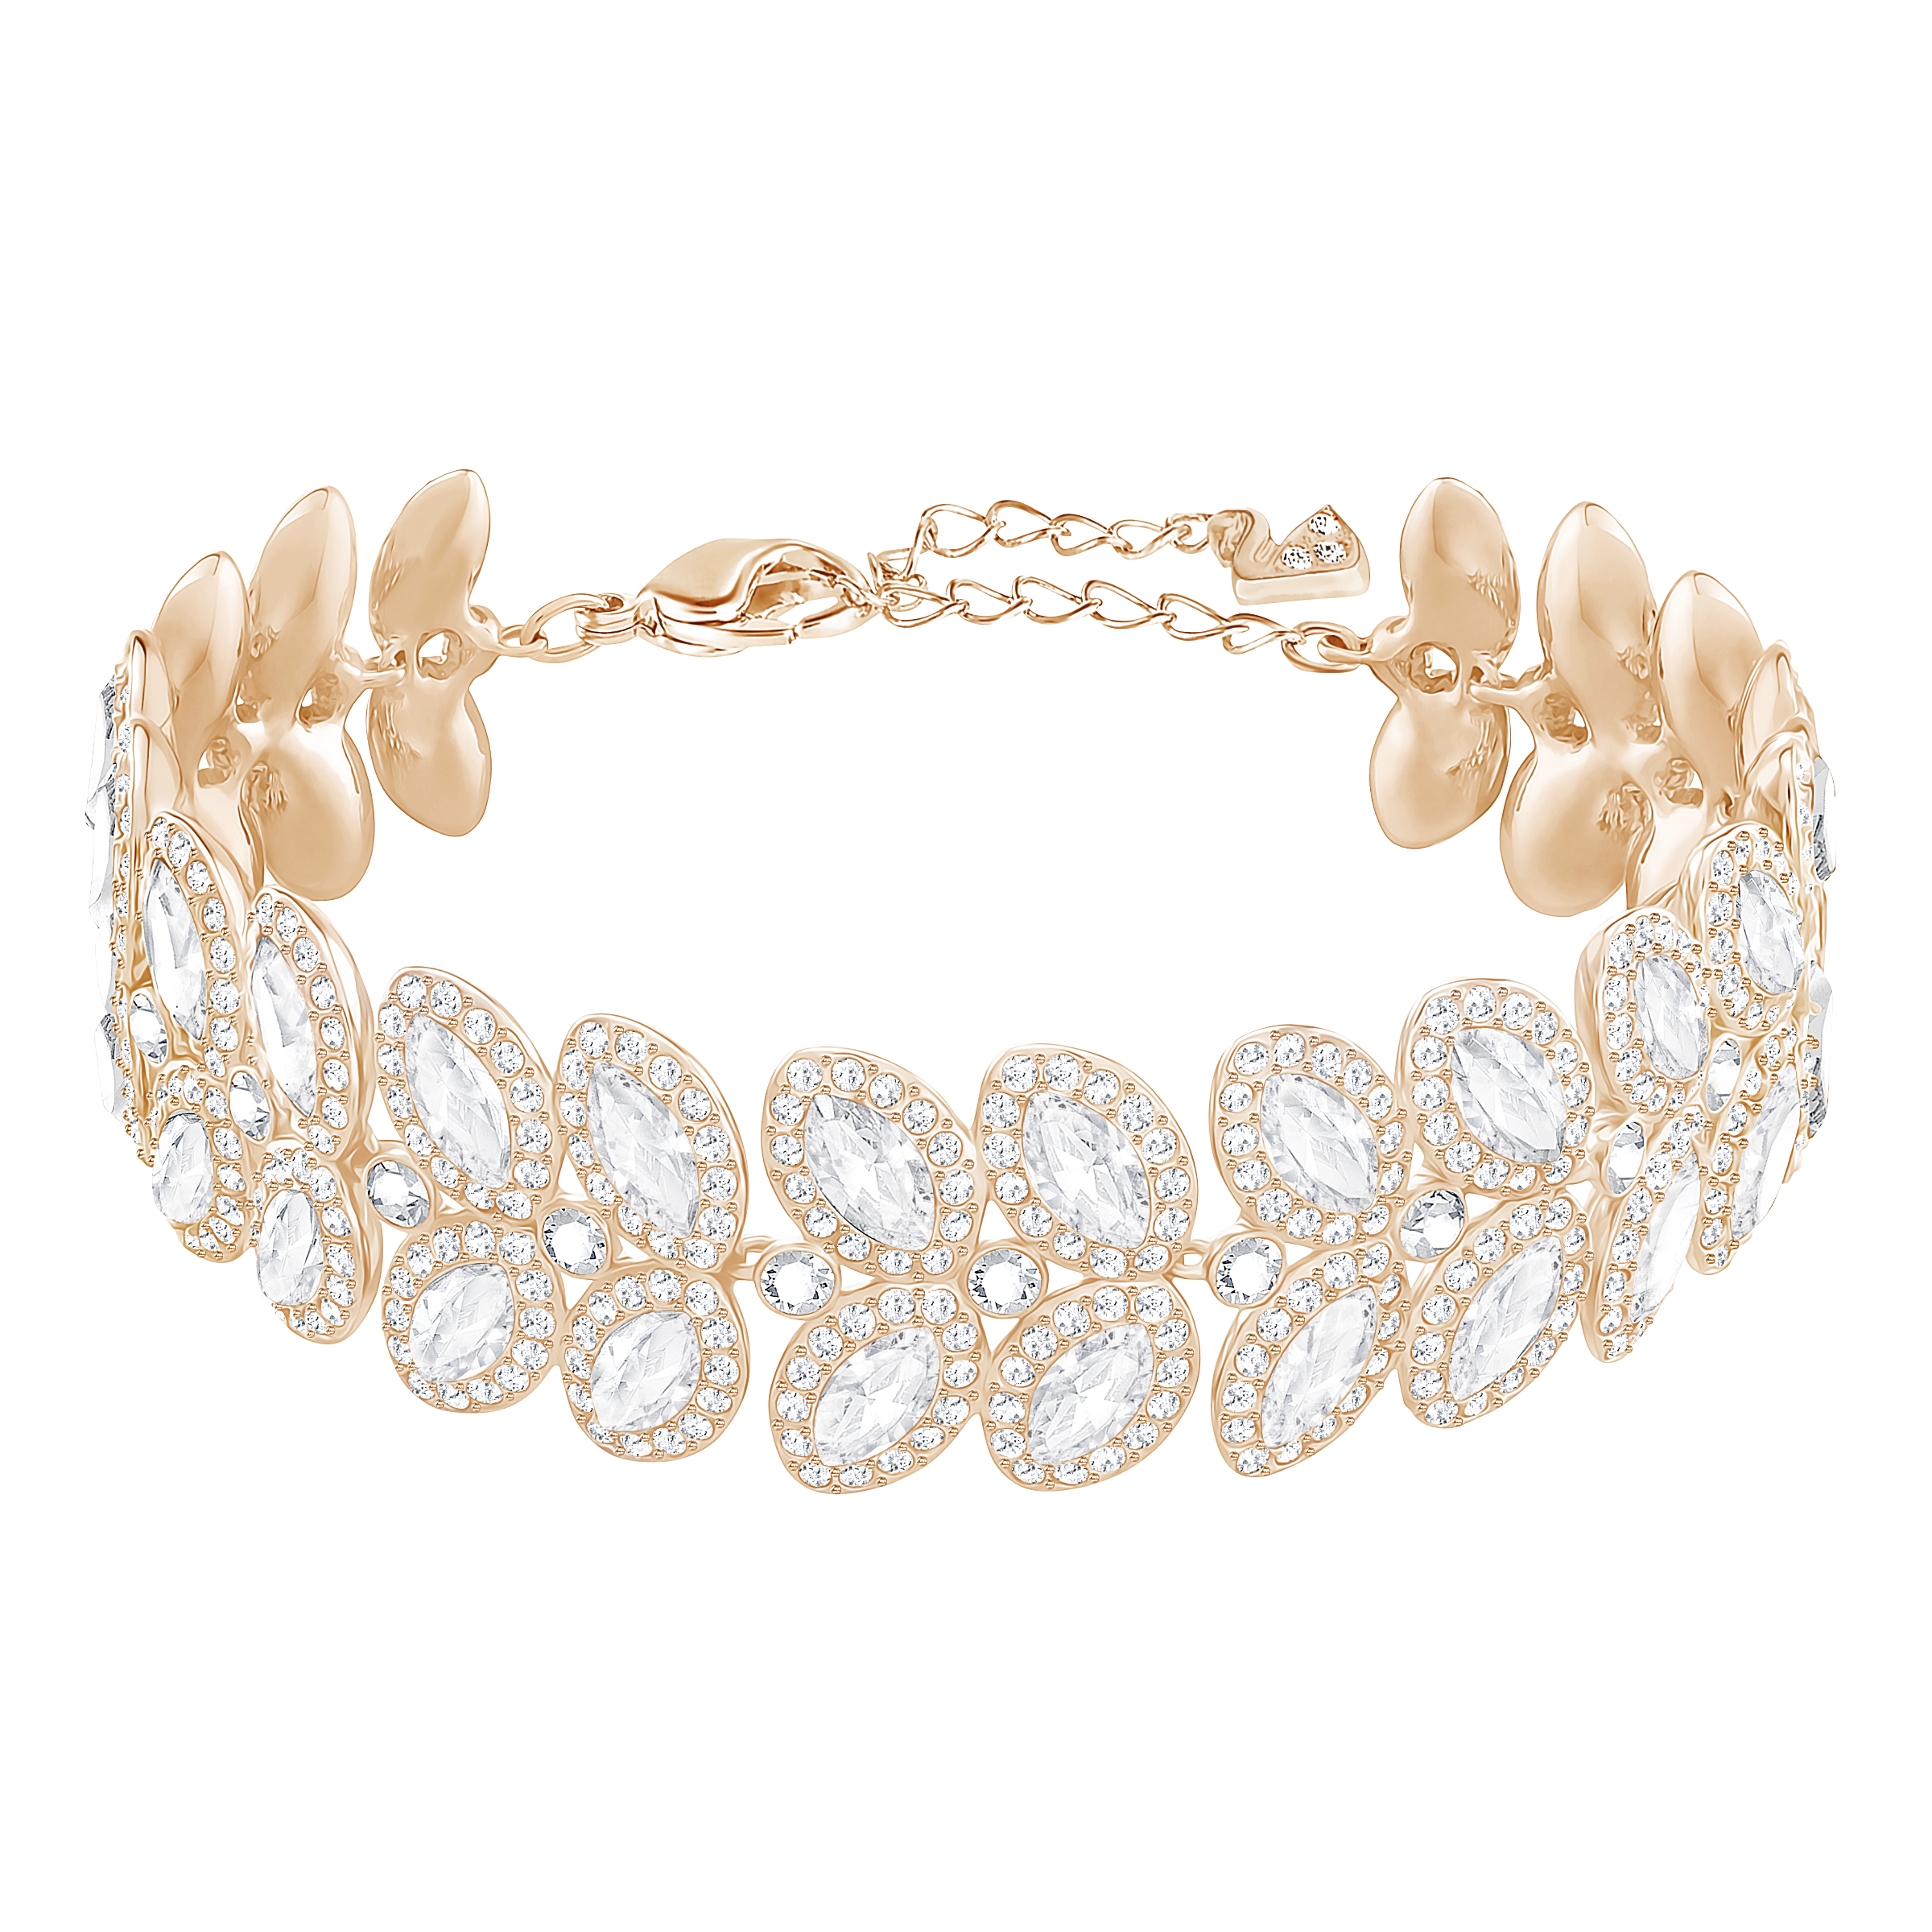 Baron Bracelet, White, Rose Gold Plated